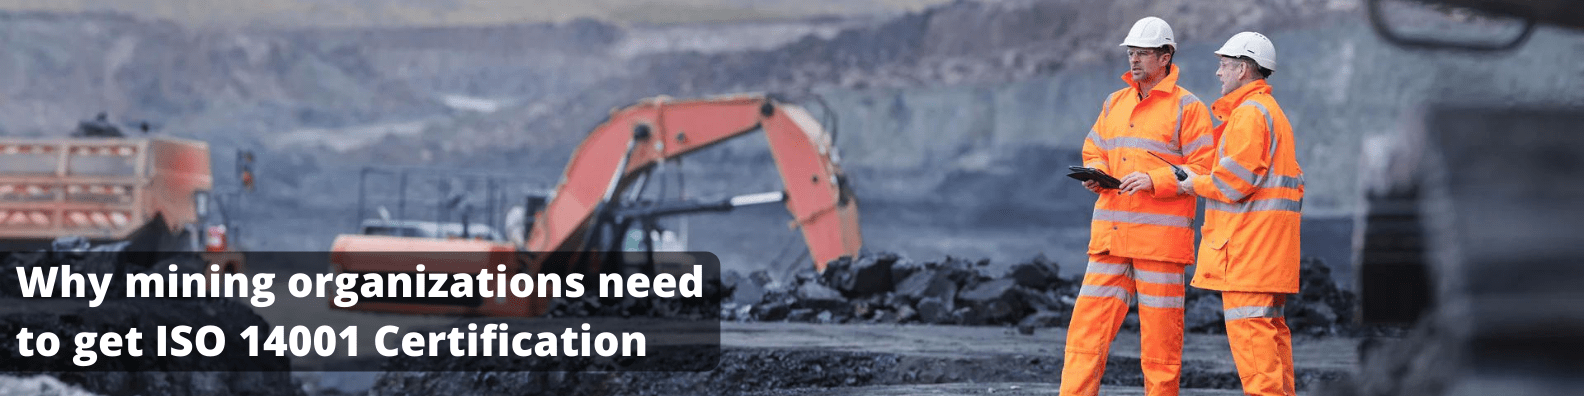 Why mining organizations need to get ISO 14001 Certification